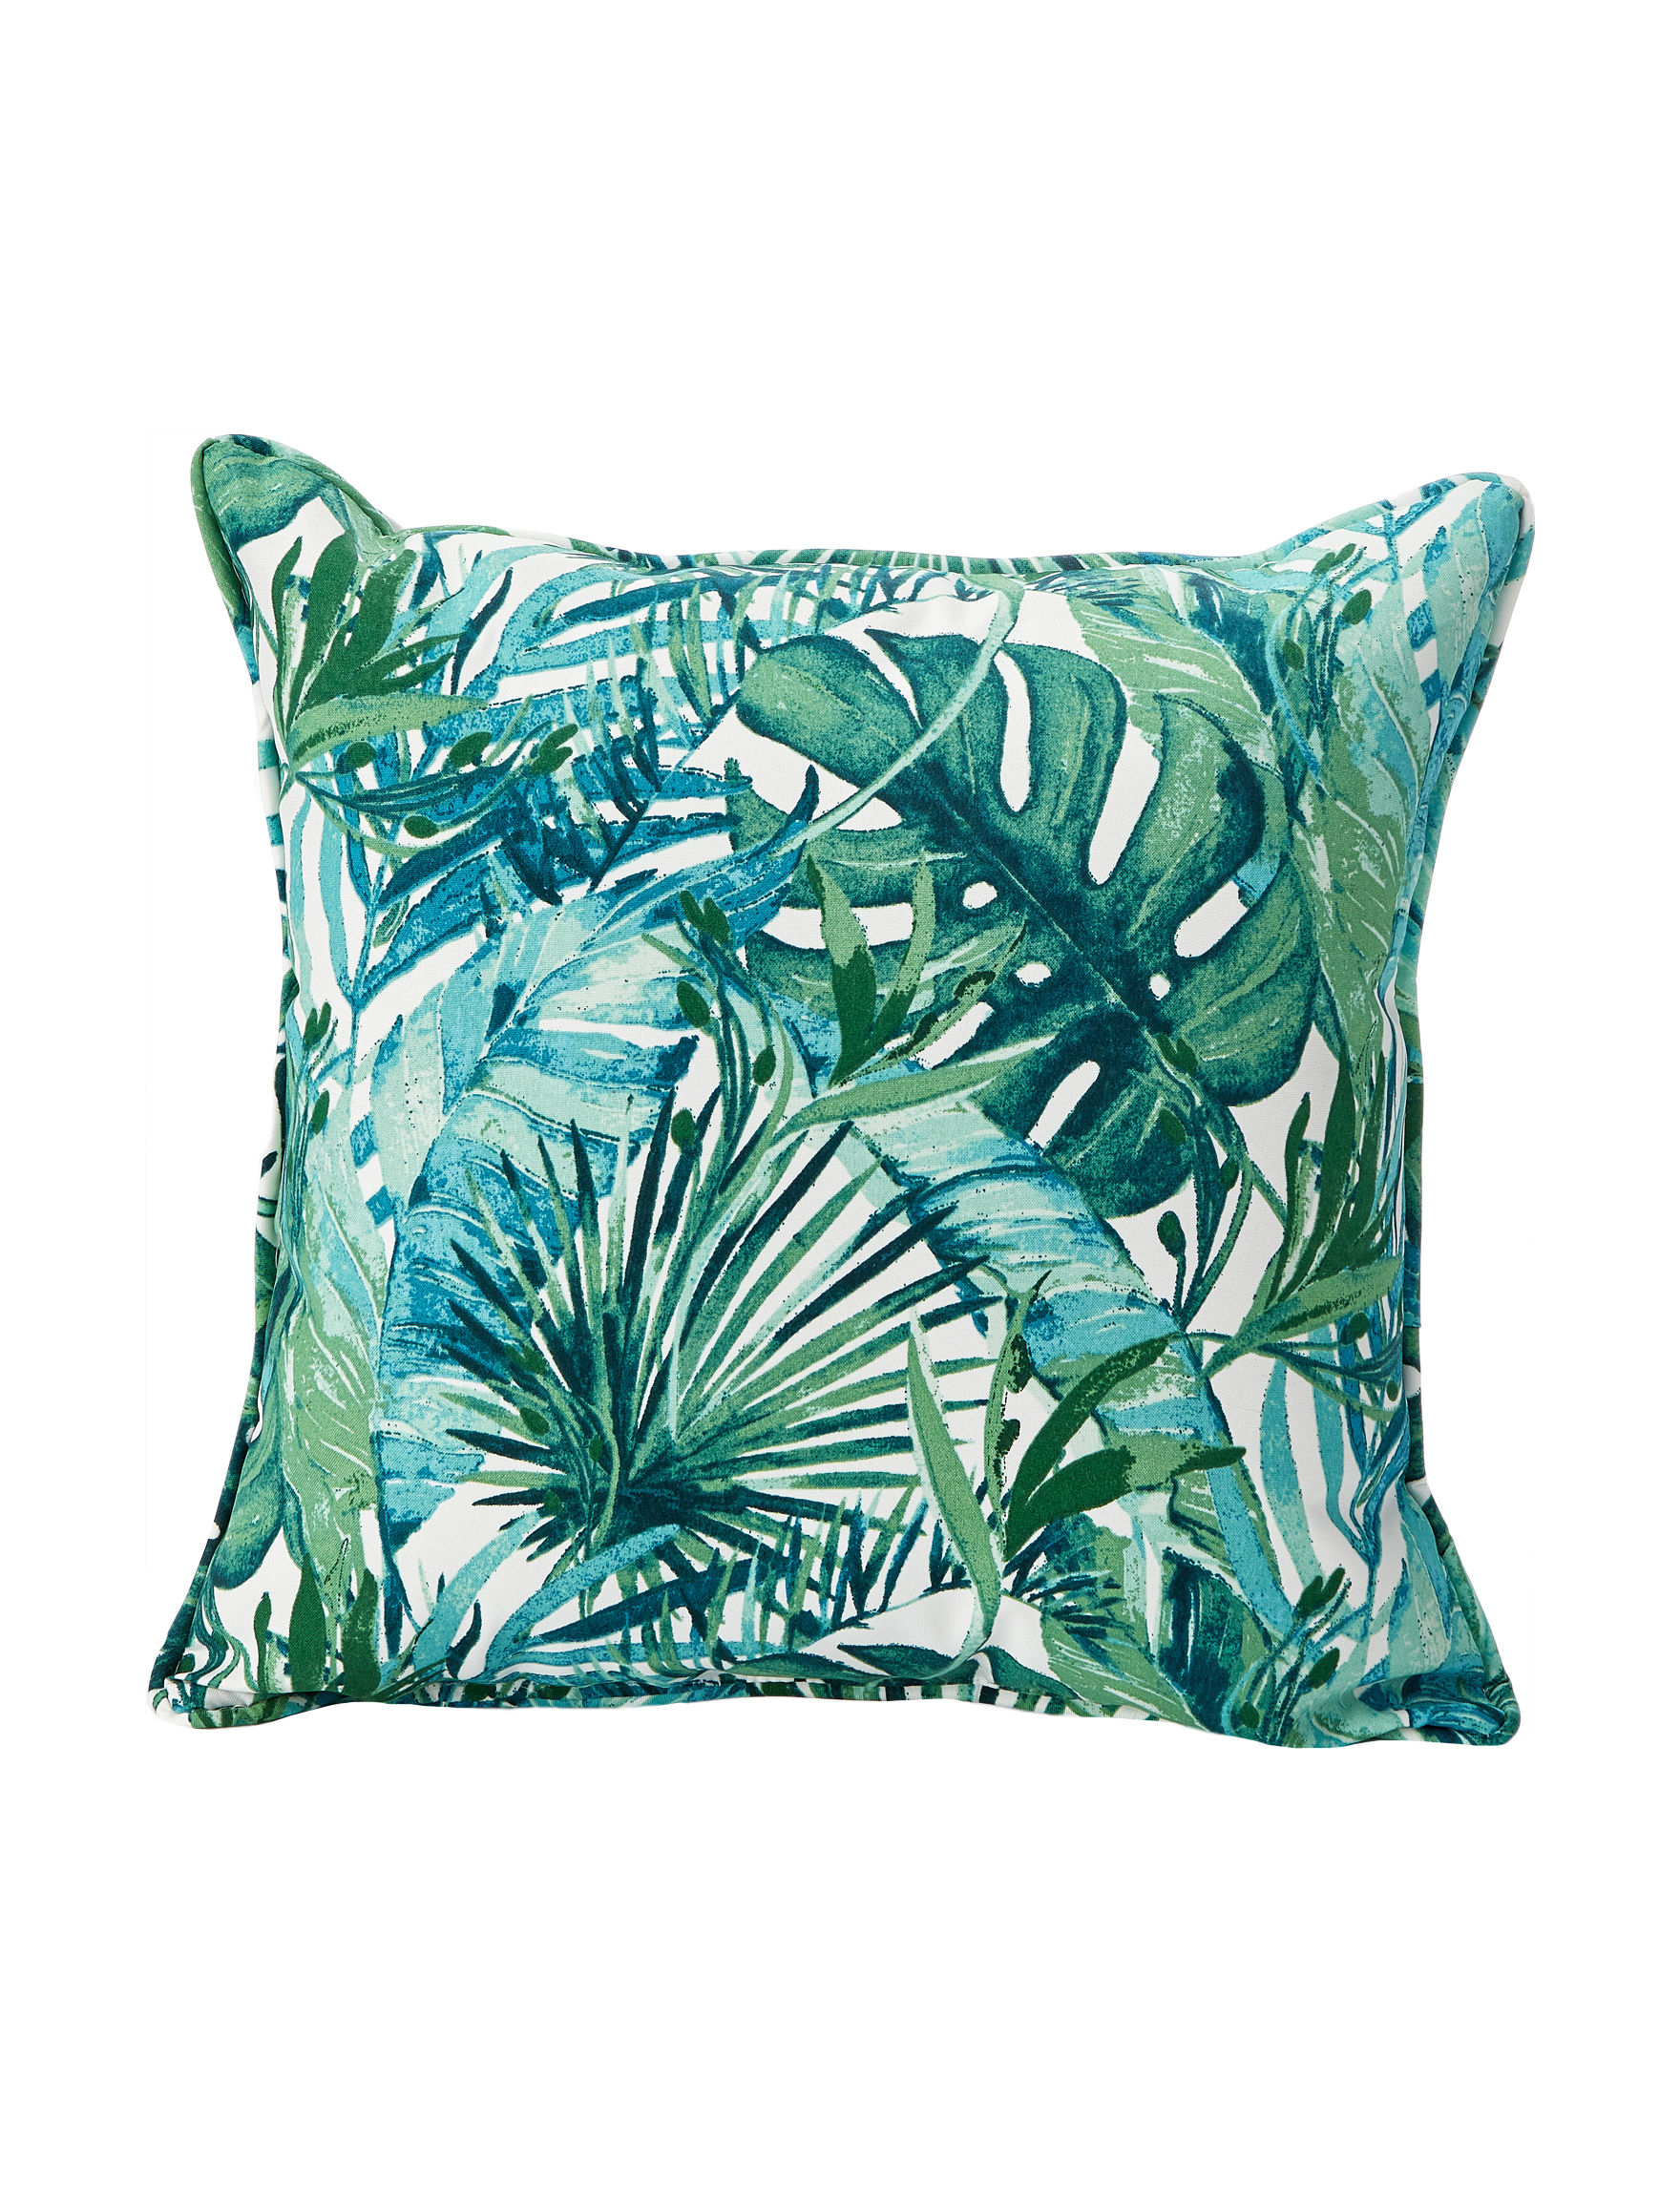 Home Fashions International Turquoise Multi Outdoor Decor